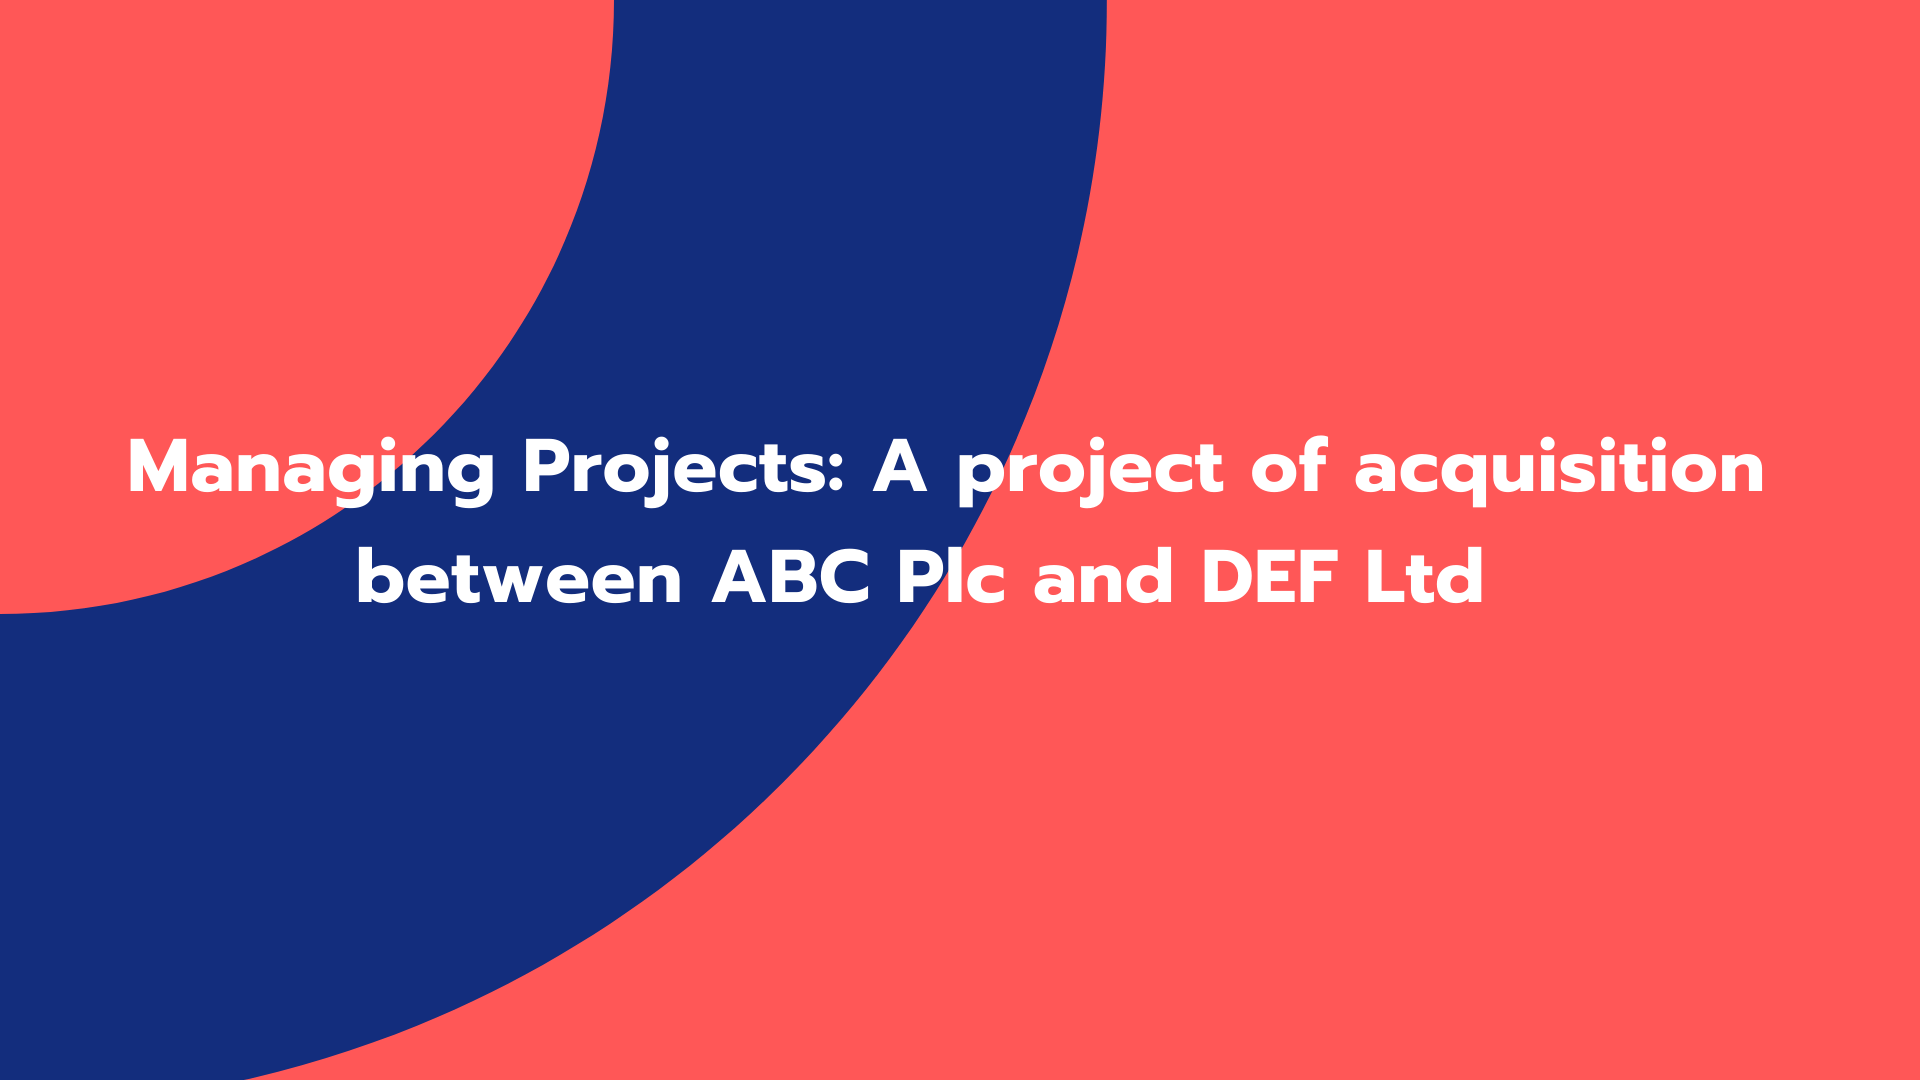 Managing Projects: A project of acquisition between ABC Plc and DEF Ltd